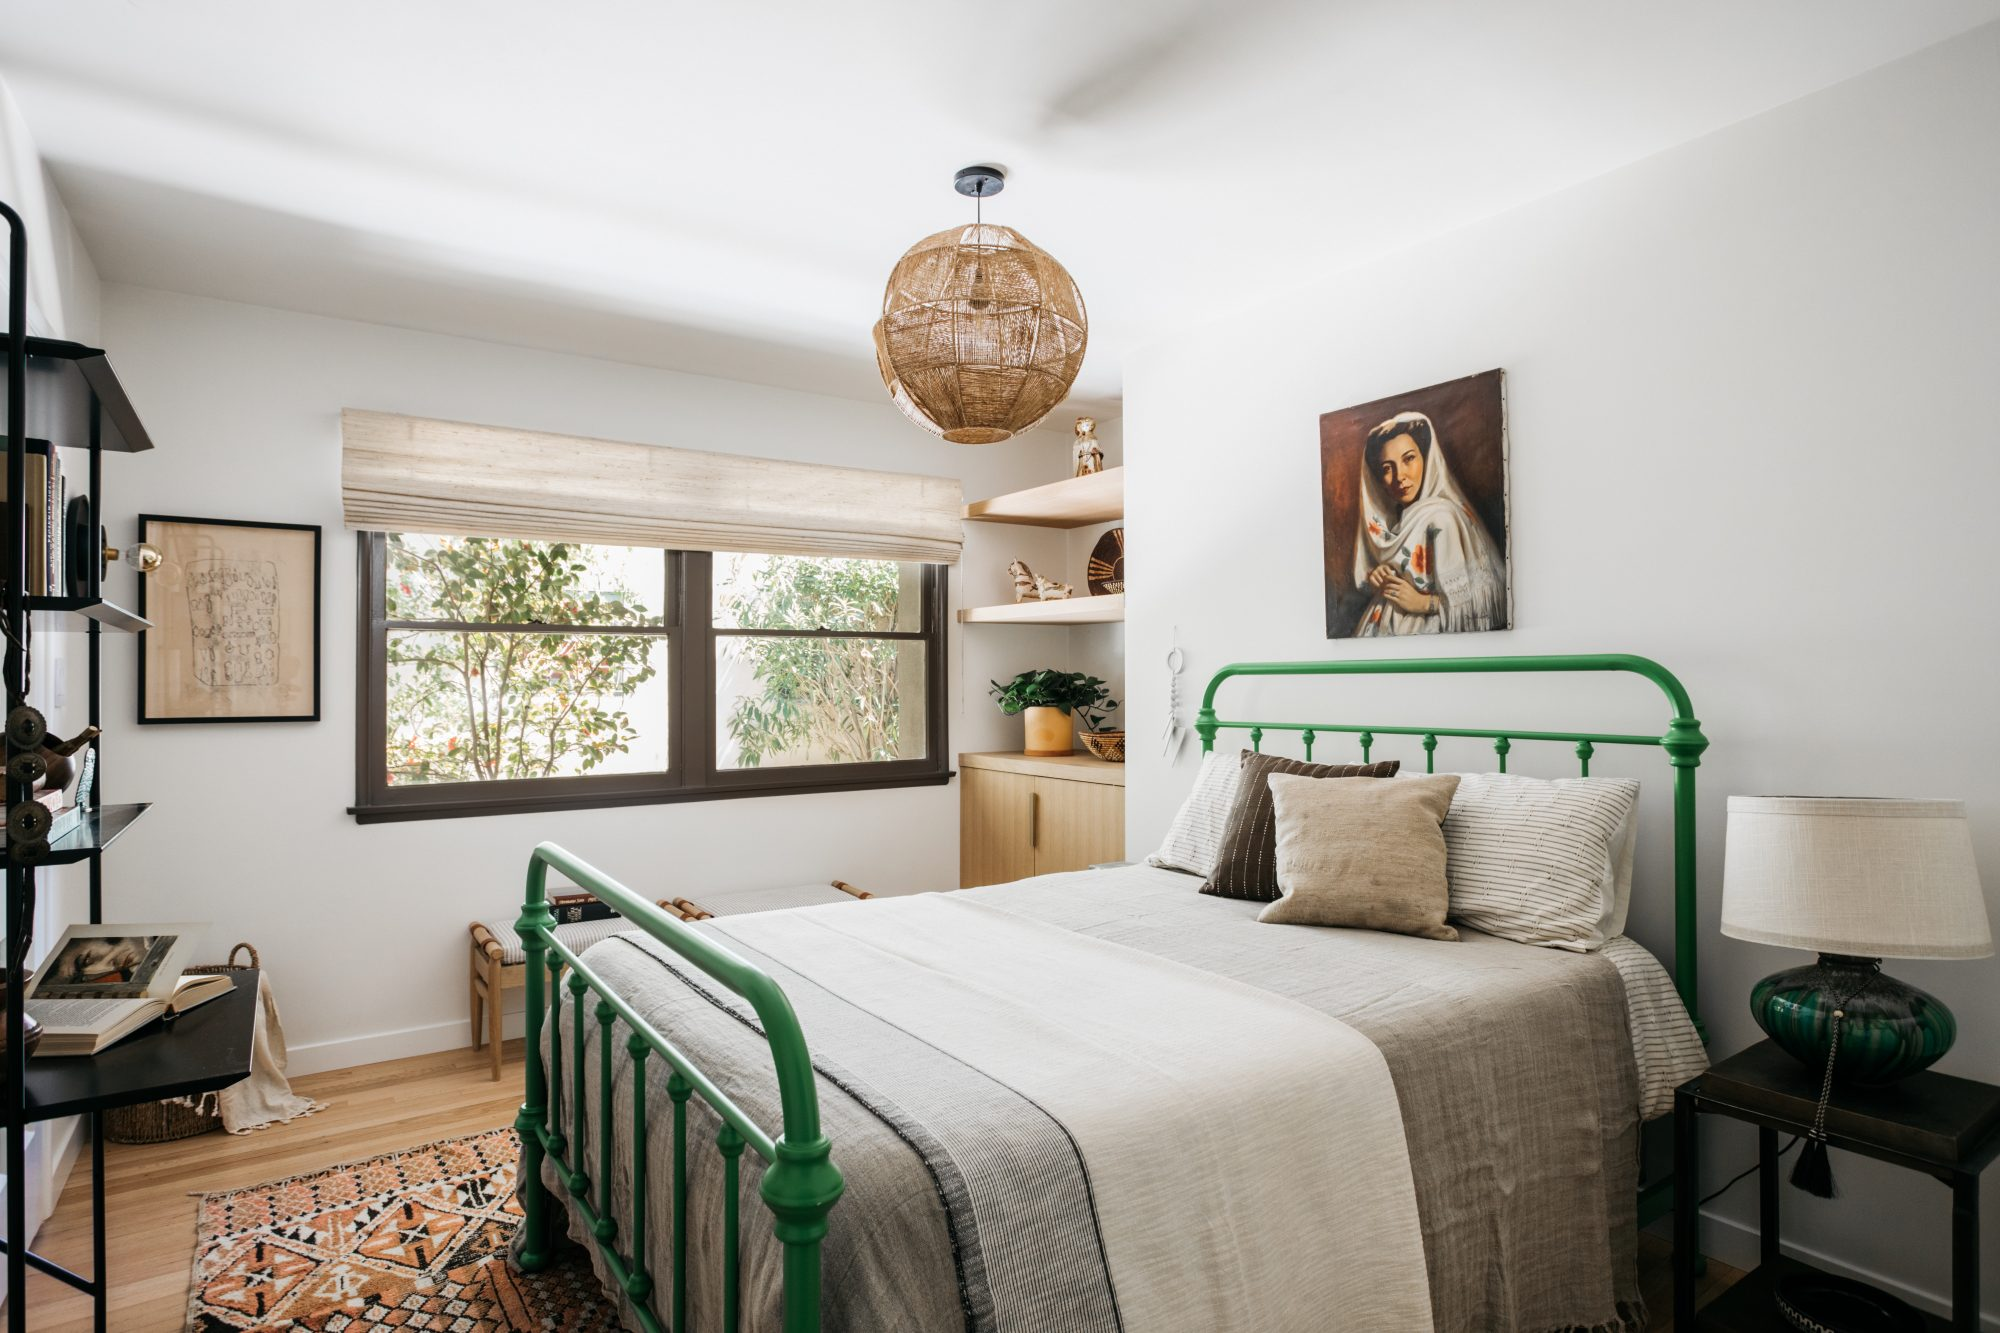 guest bedroom with green painted bedframe